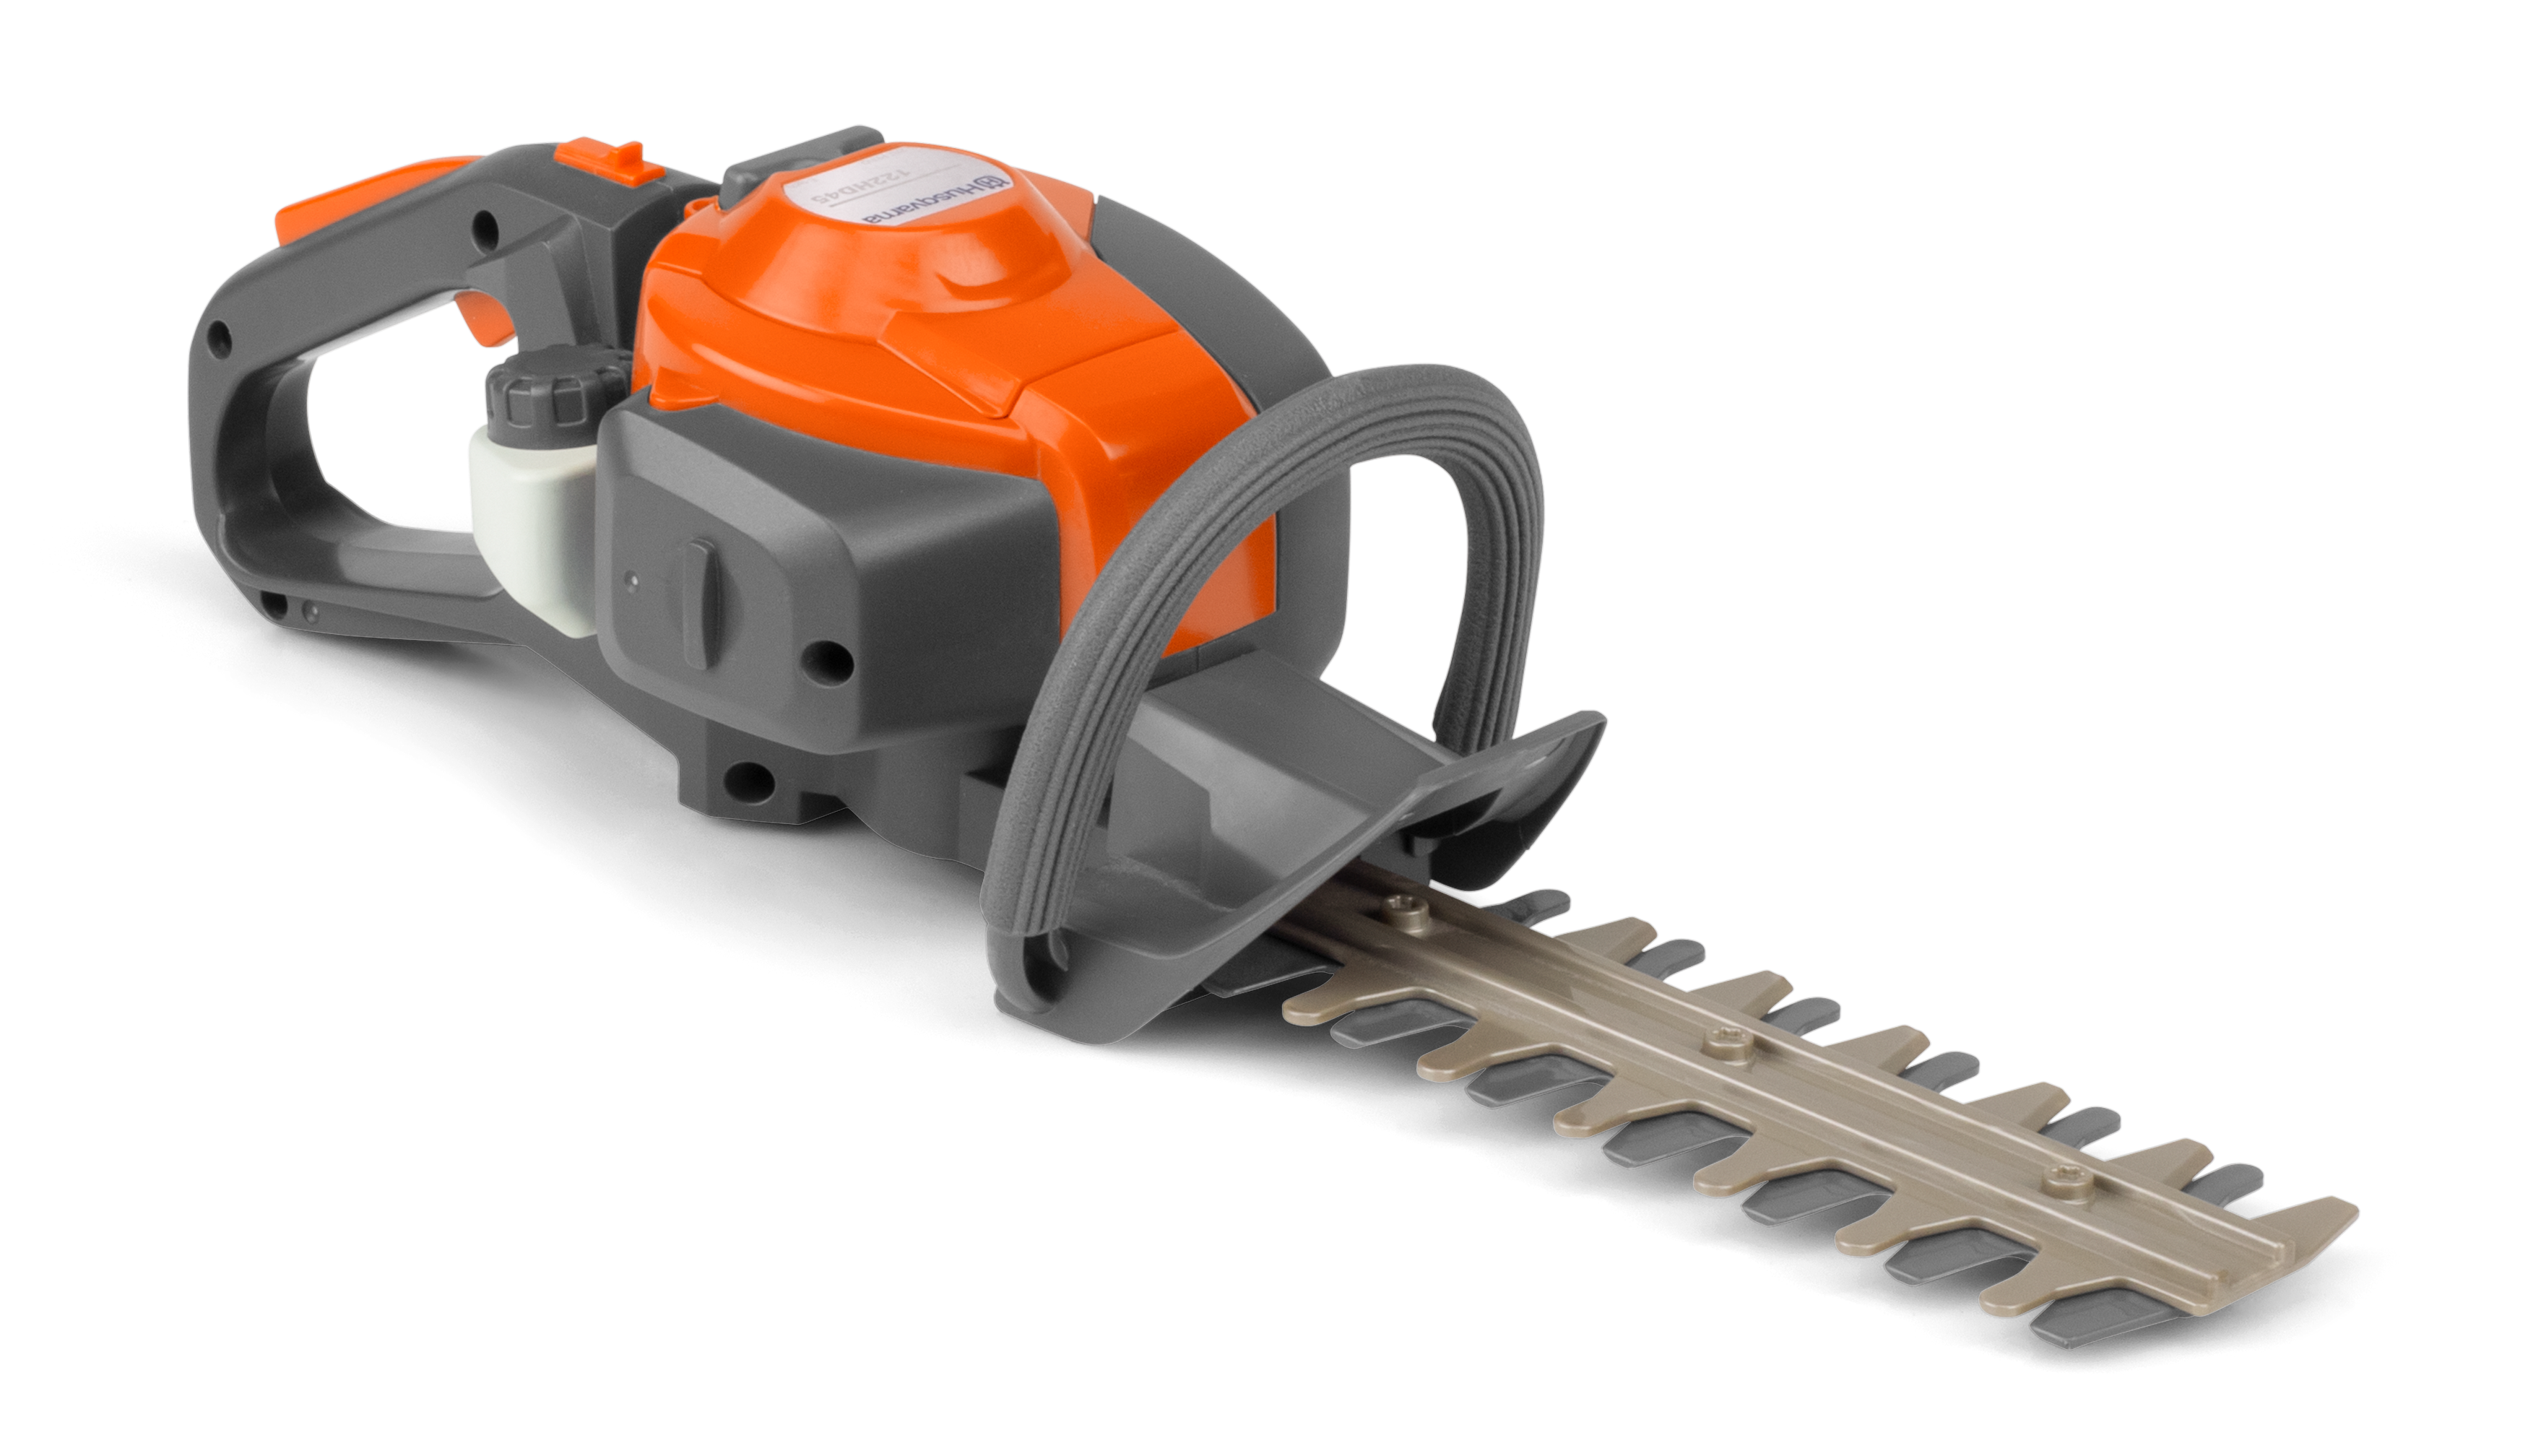 Image for Toy Hedge Trimmer                                                                                                                from HusqvarnaB2C